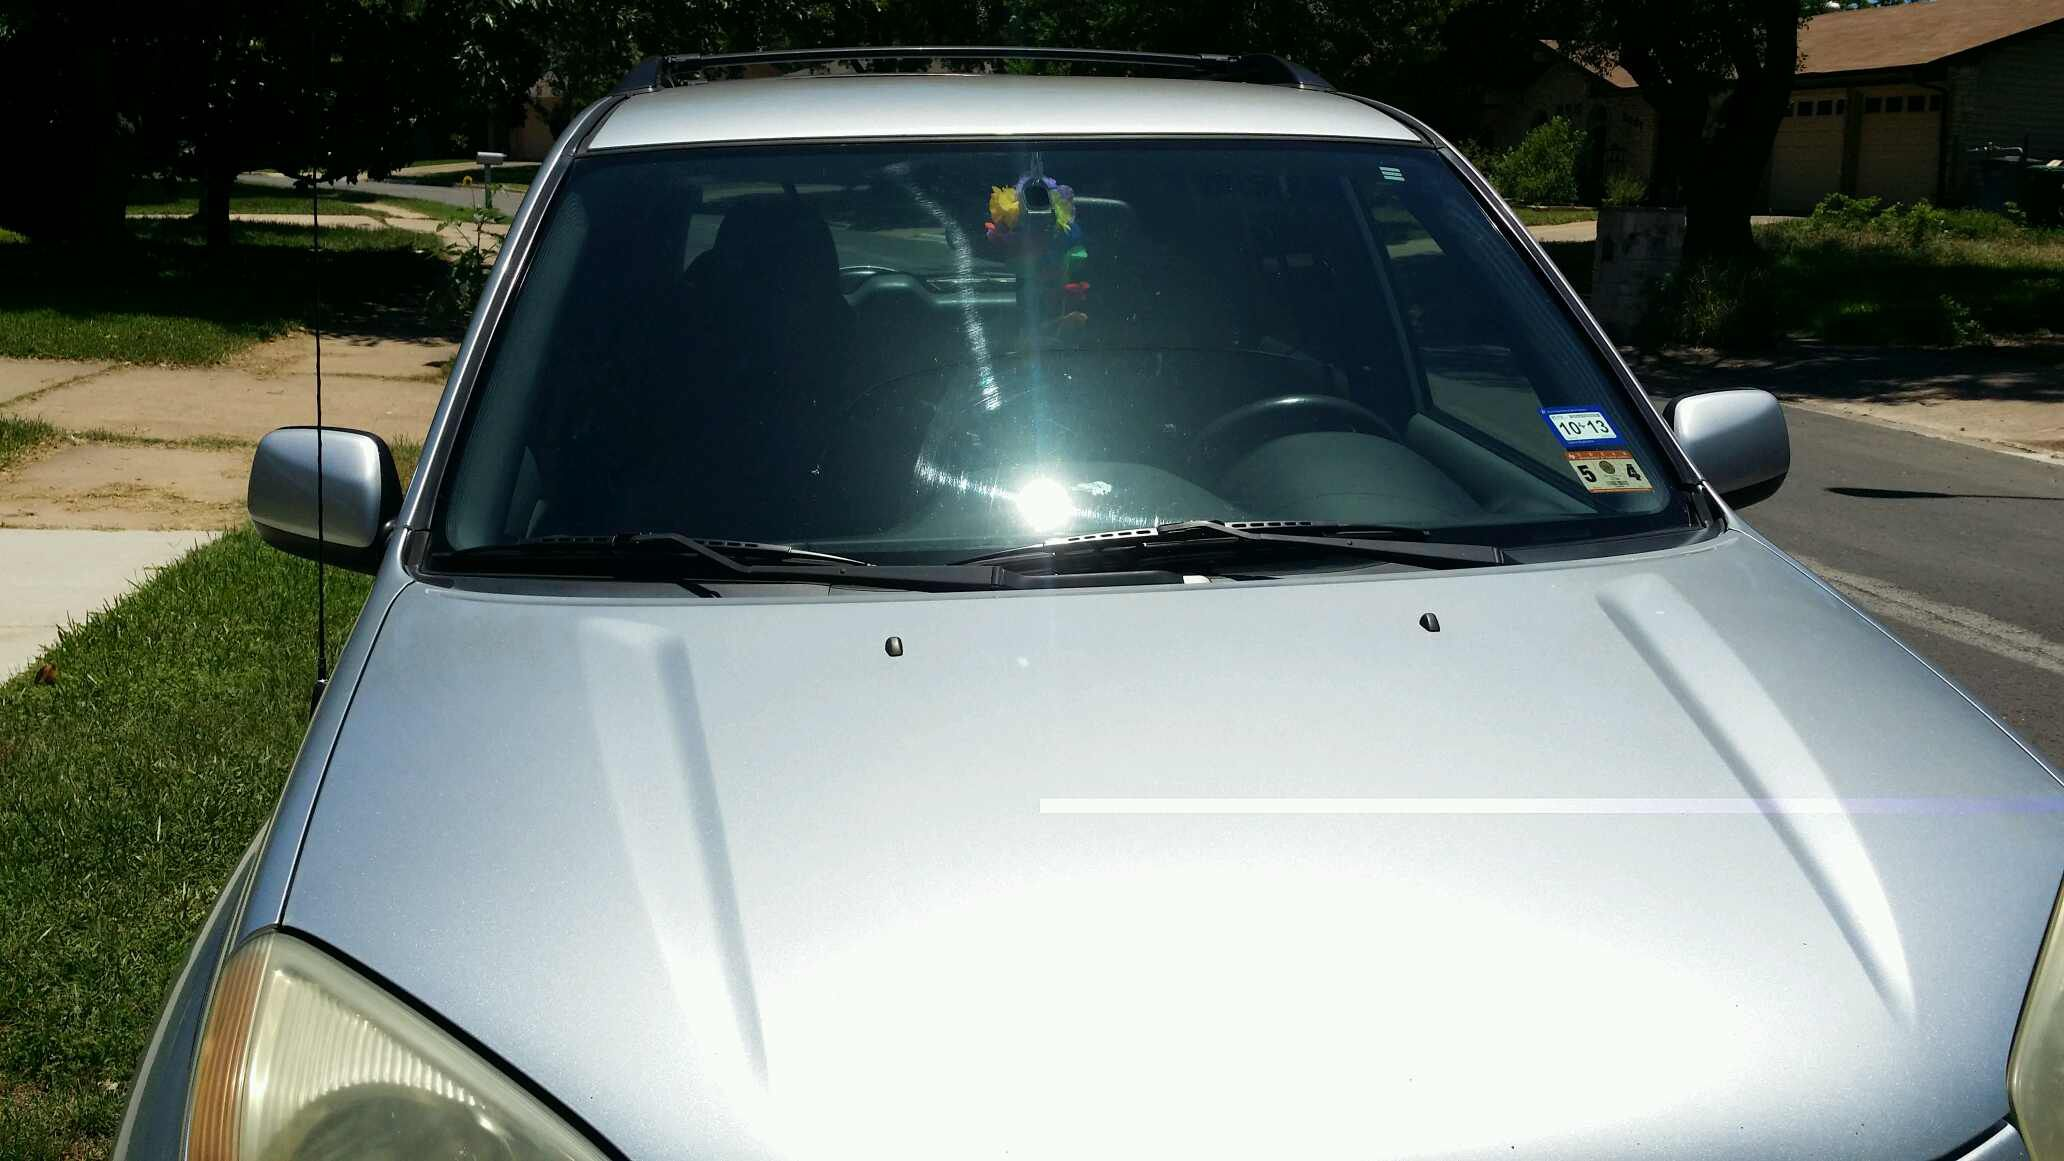 Oem toyota windshield glass replacement for Motor vehicle glass replacement